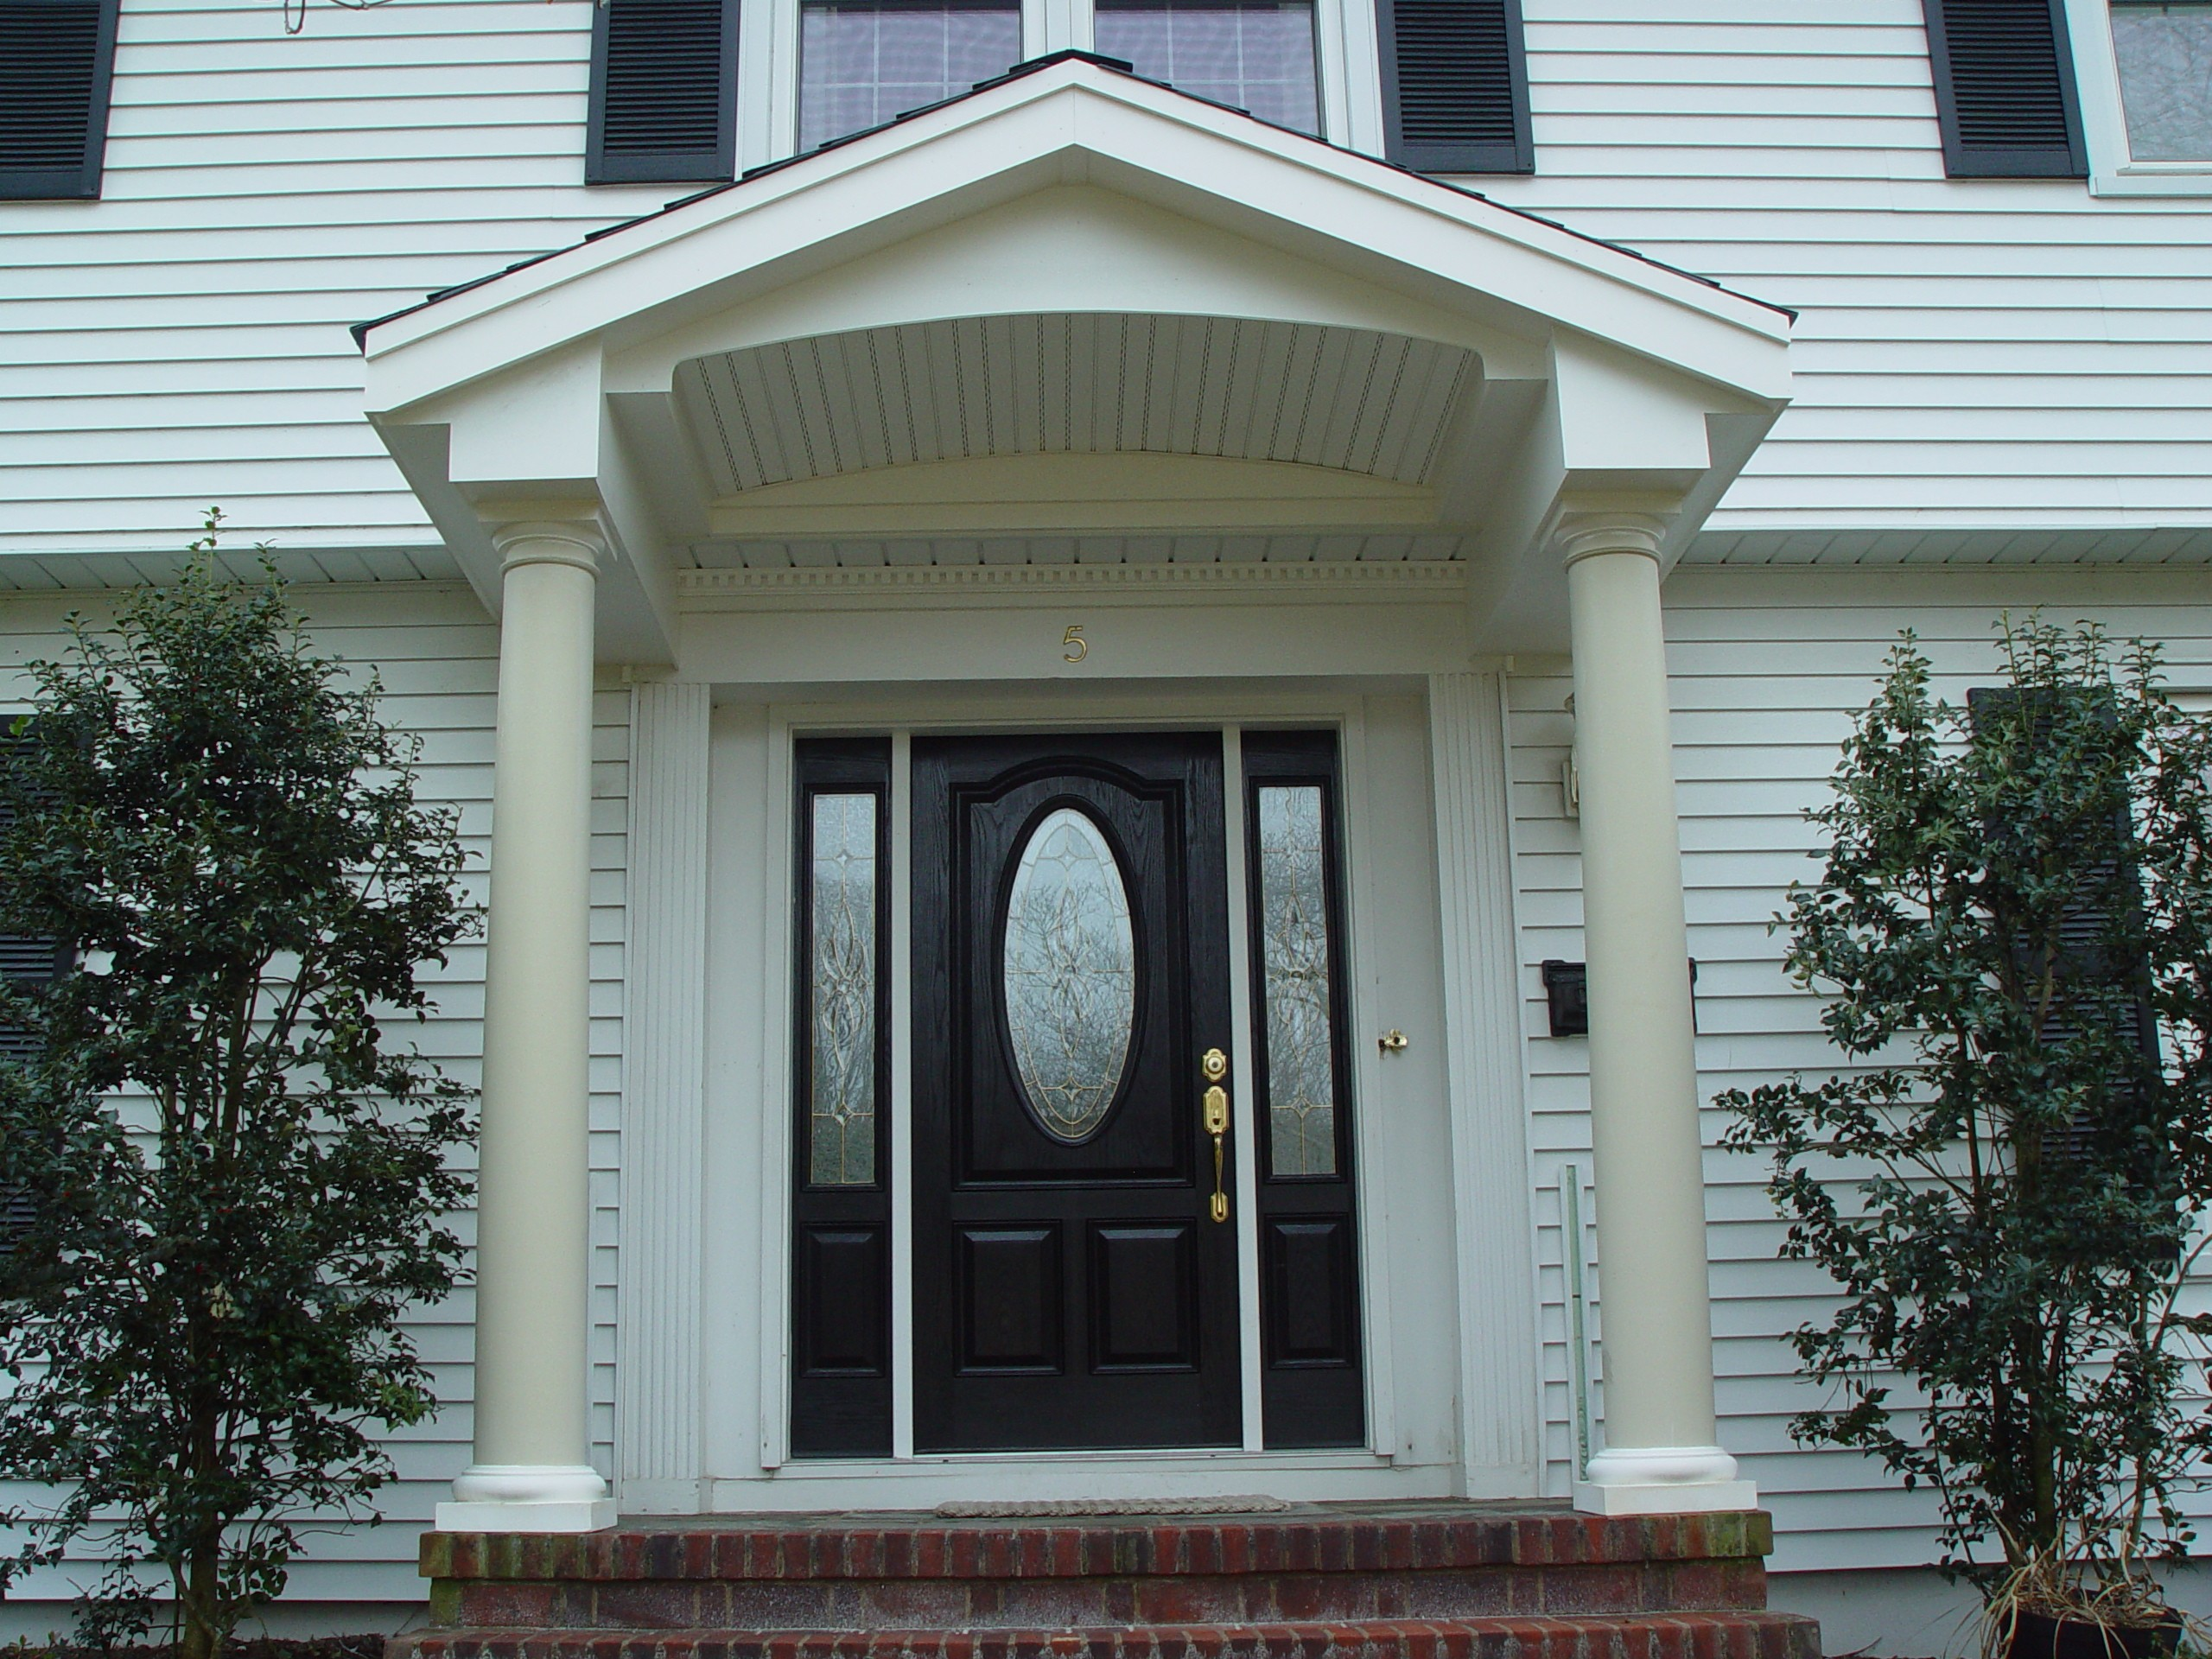 Front entry portico remodeling projects in new jersey for Exterior entryway designs